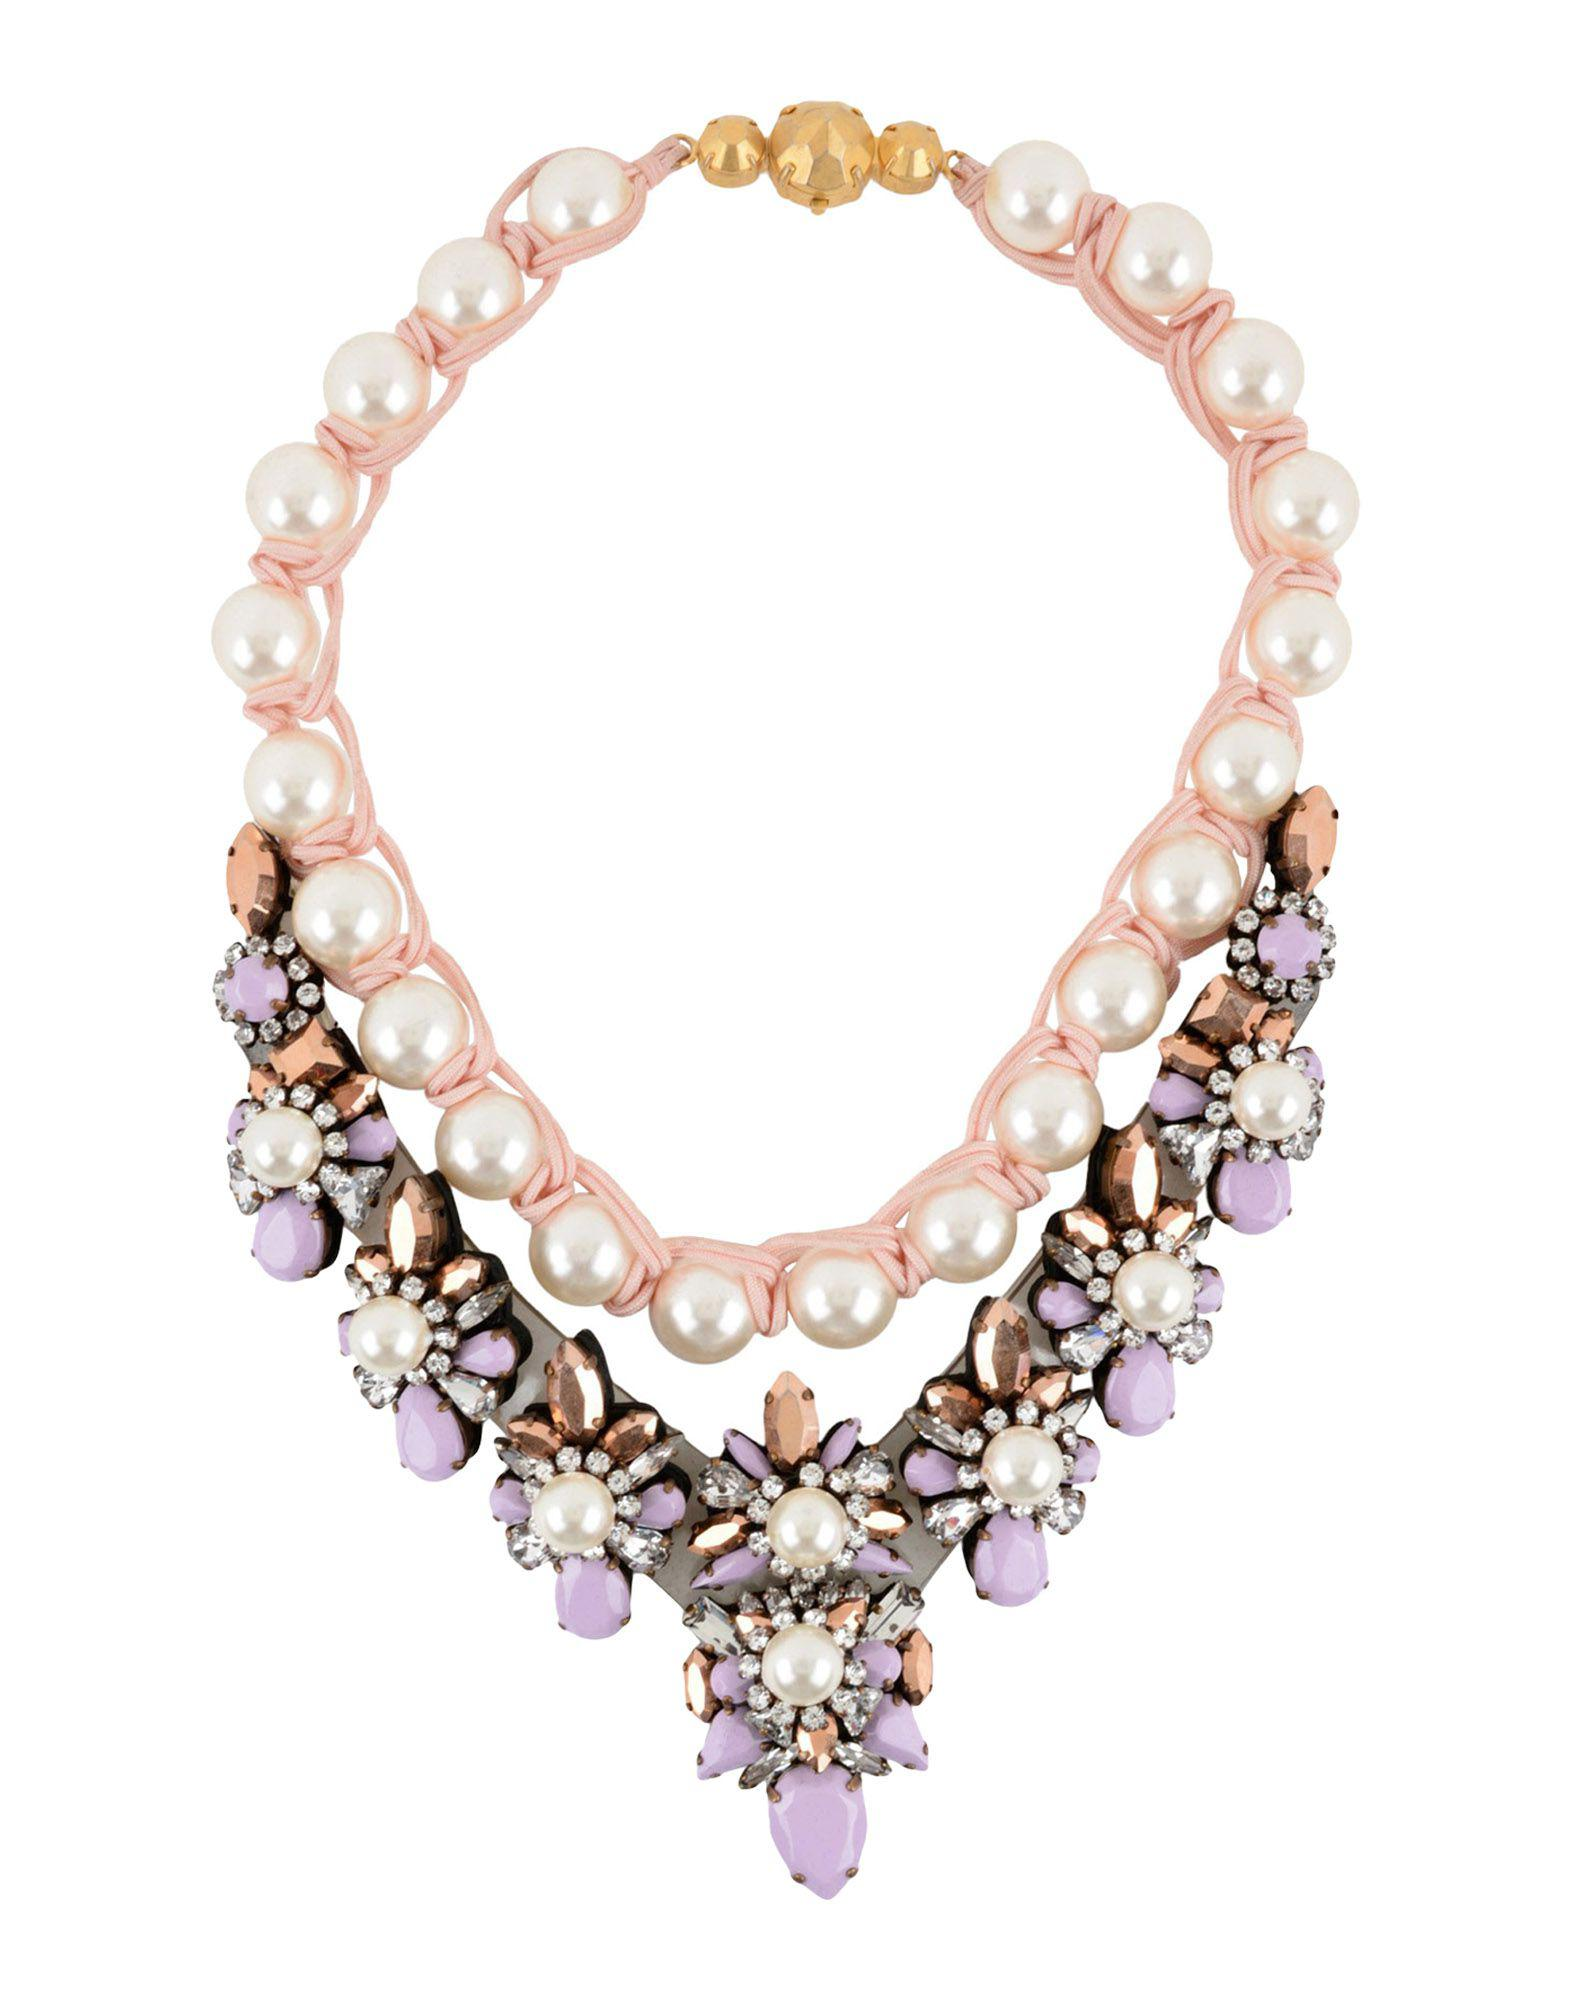 leitmotiv more pink crystal v org necklaces necklace id shourouk for clear embellished zambia neon jewelry master taupe at sale